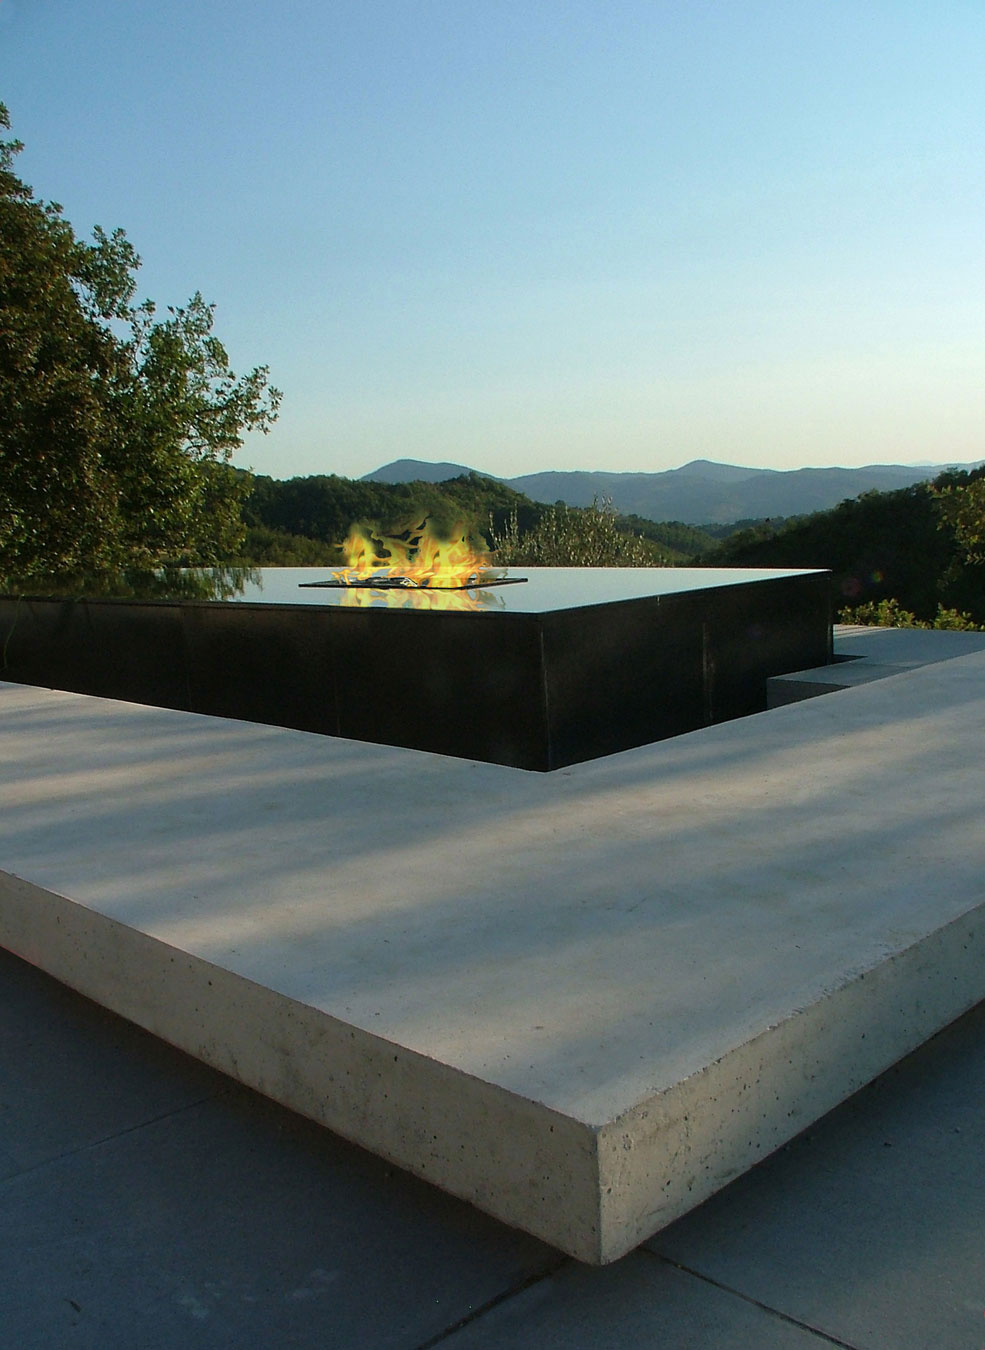 Contemporary Fireplace, Water Feature, Views, Torre Moravola Boutique Hotel in Montone, Italy